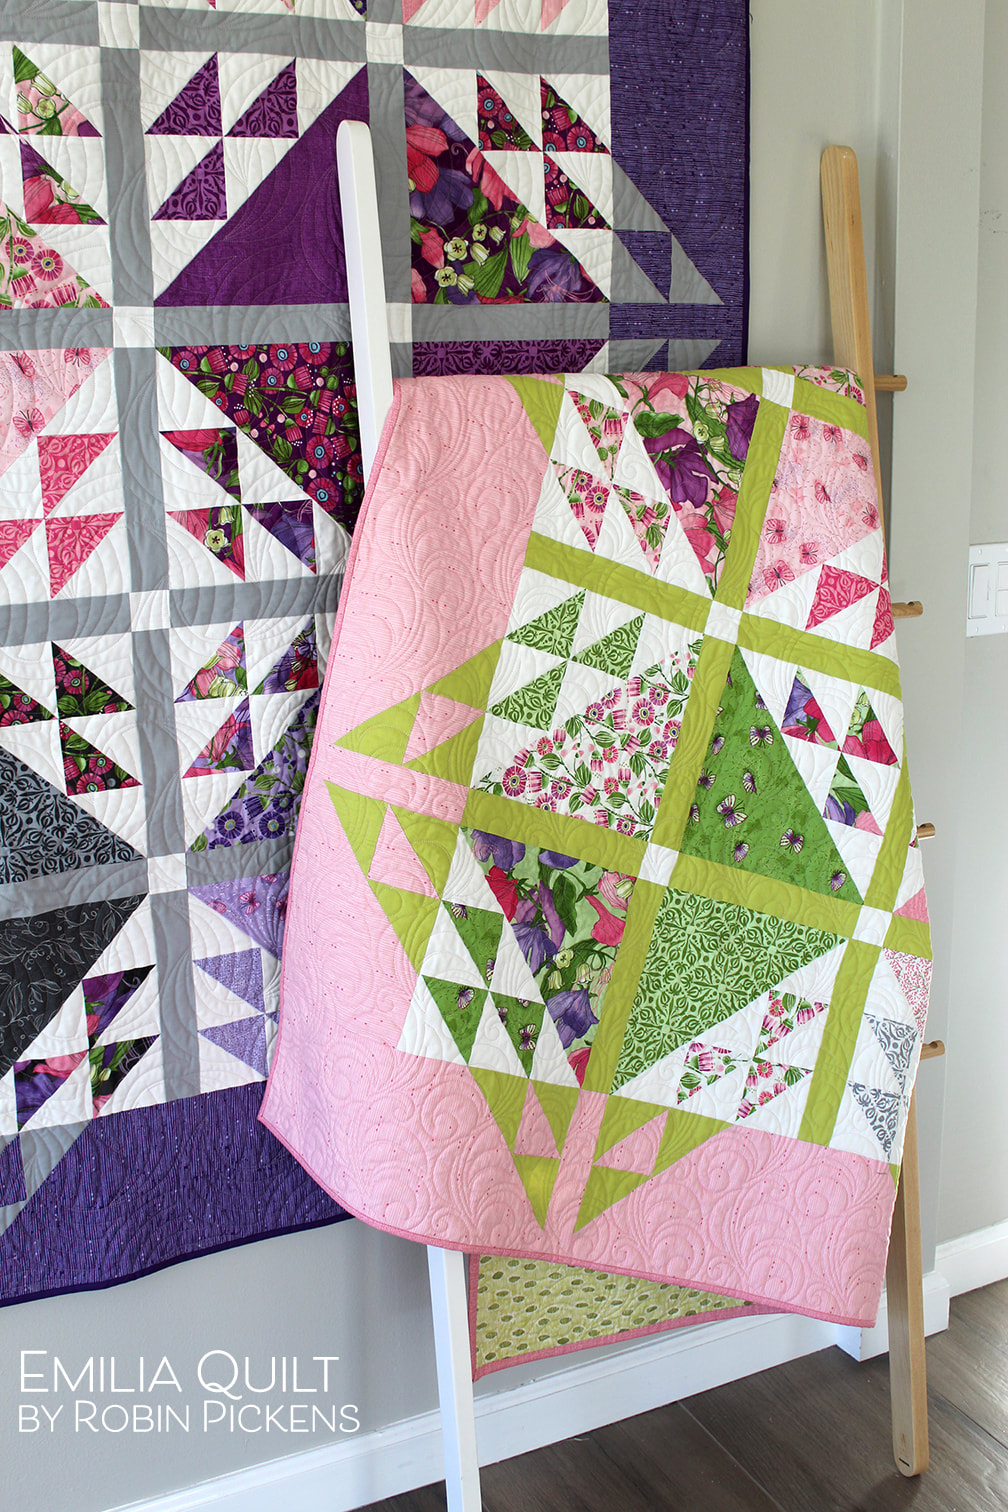 Emilia quilt by Robin Pickens with Sweet Pea and Lily Moda fabrics